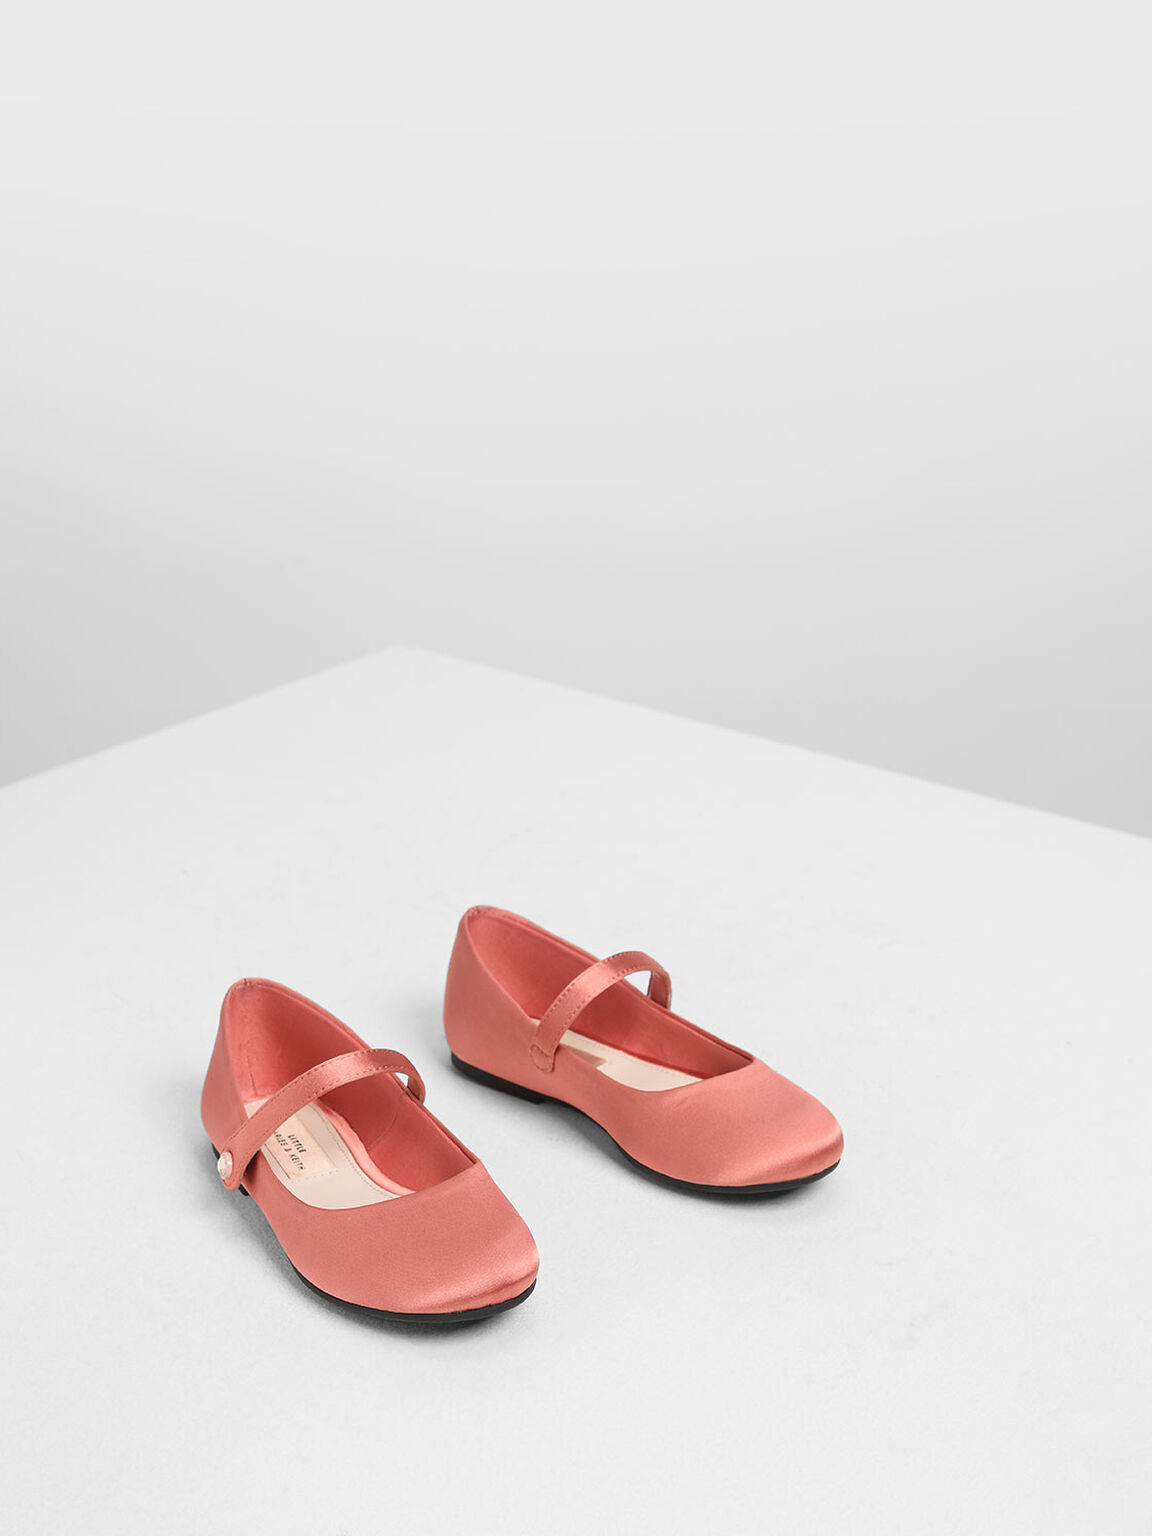 Kids' Classic Mary Janes, Coral Pink, hi-res